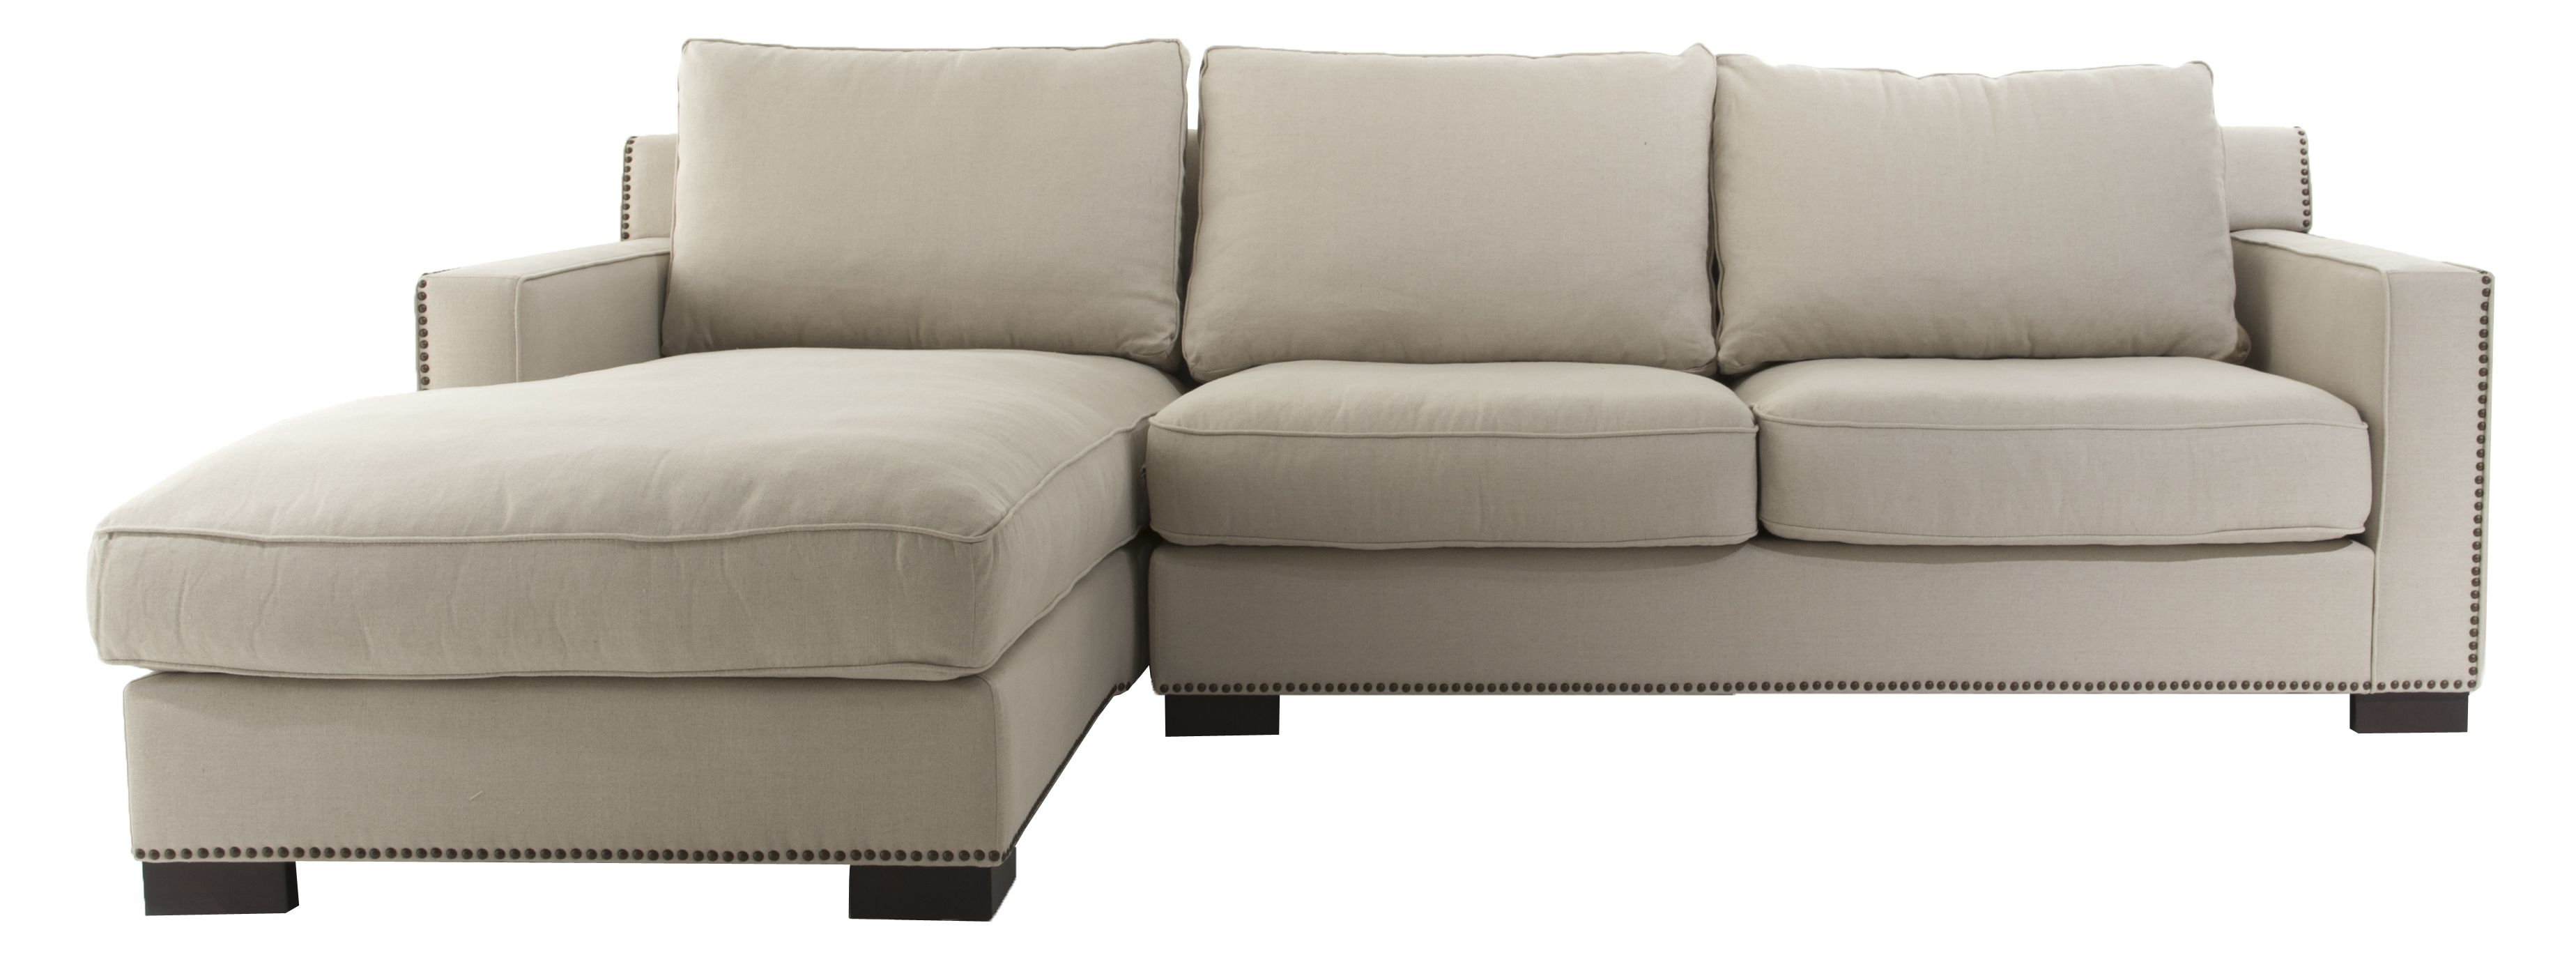 Most Recently Released Collins Sofa Sectionals With Reversible Chaise Pertaining To Collins Sectional :: Nail Head Detail And Fabric Options Are (View 9 of 20)